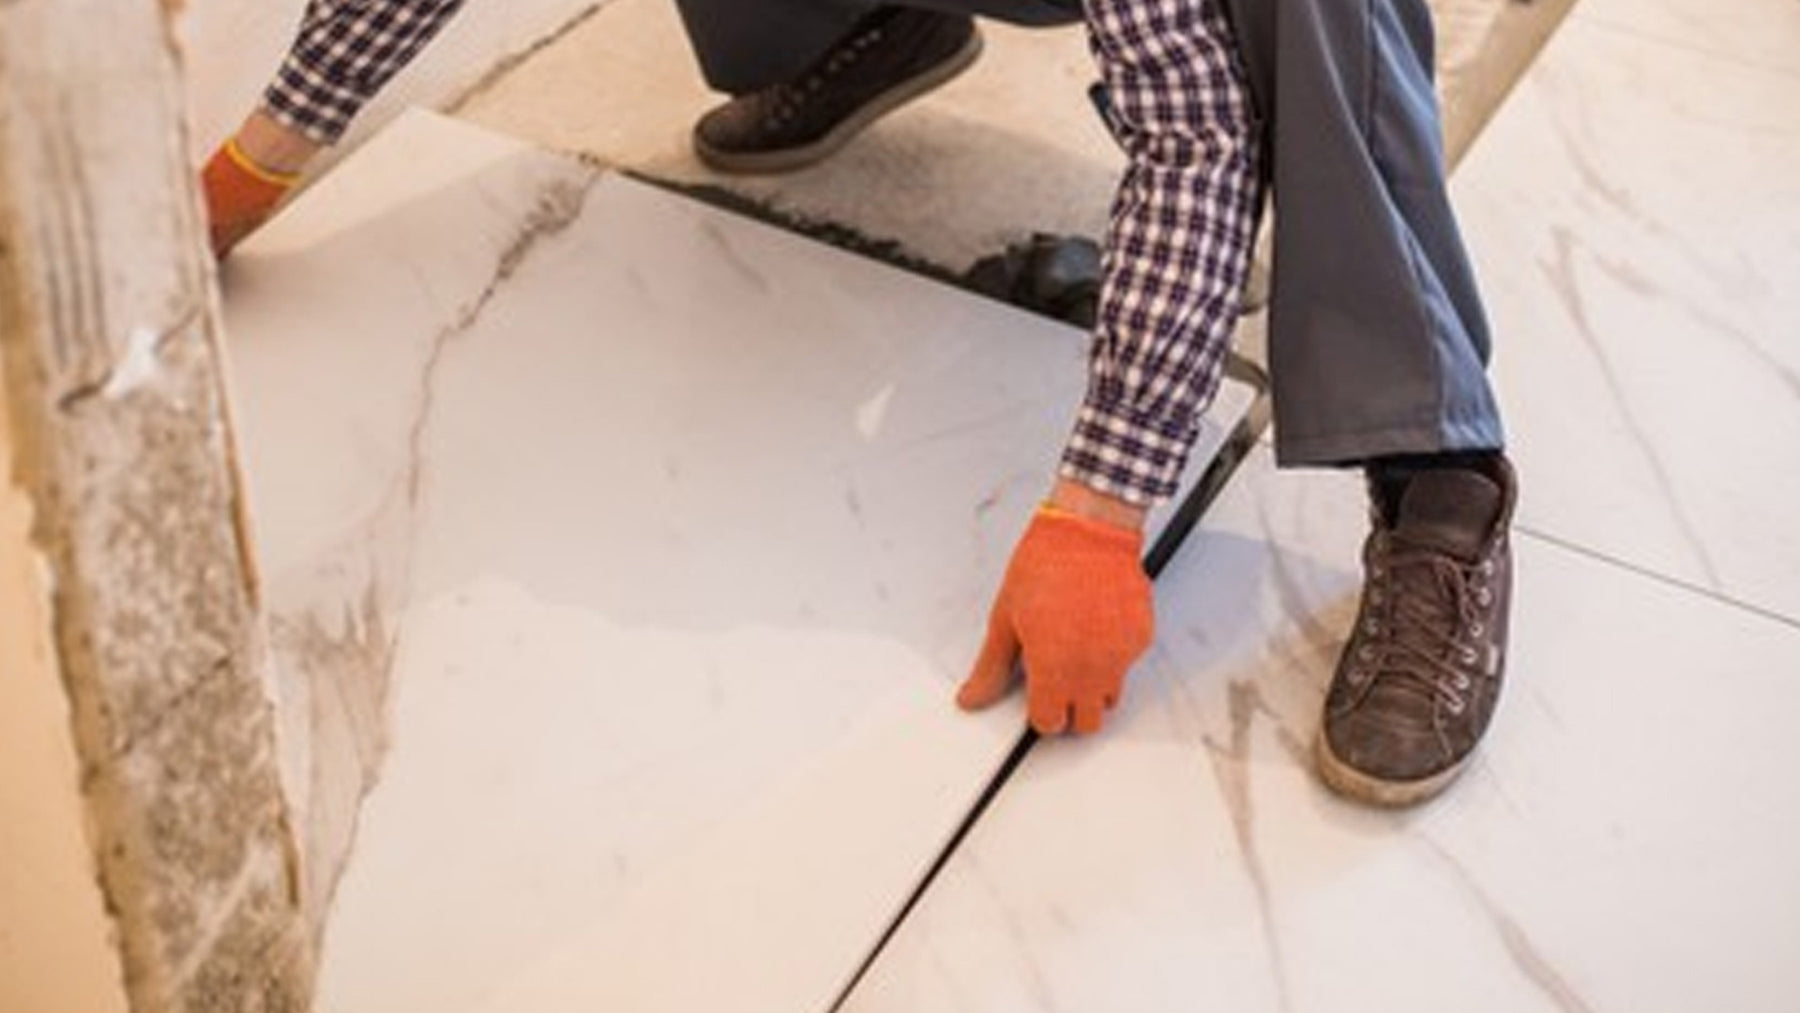 Common Tile Installation Nightmares: Never Commit These Mistakes!